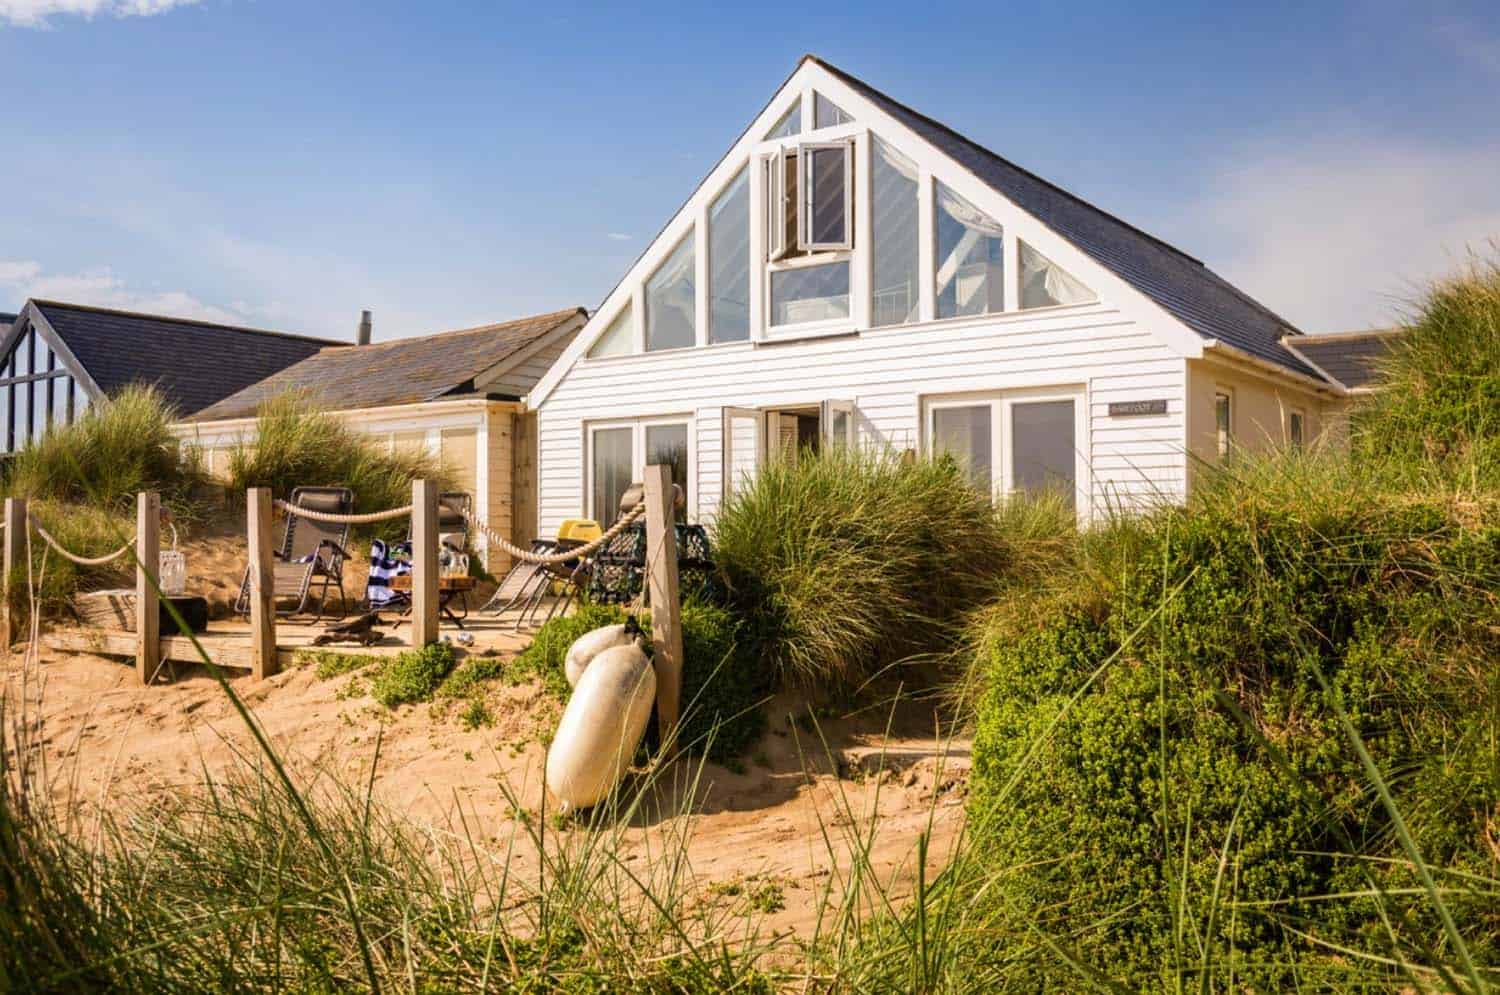 Barefoot Beach House-East Sussex-06-1 Kindesign